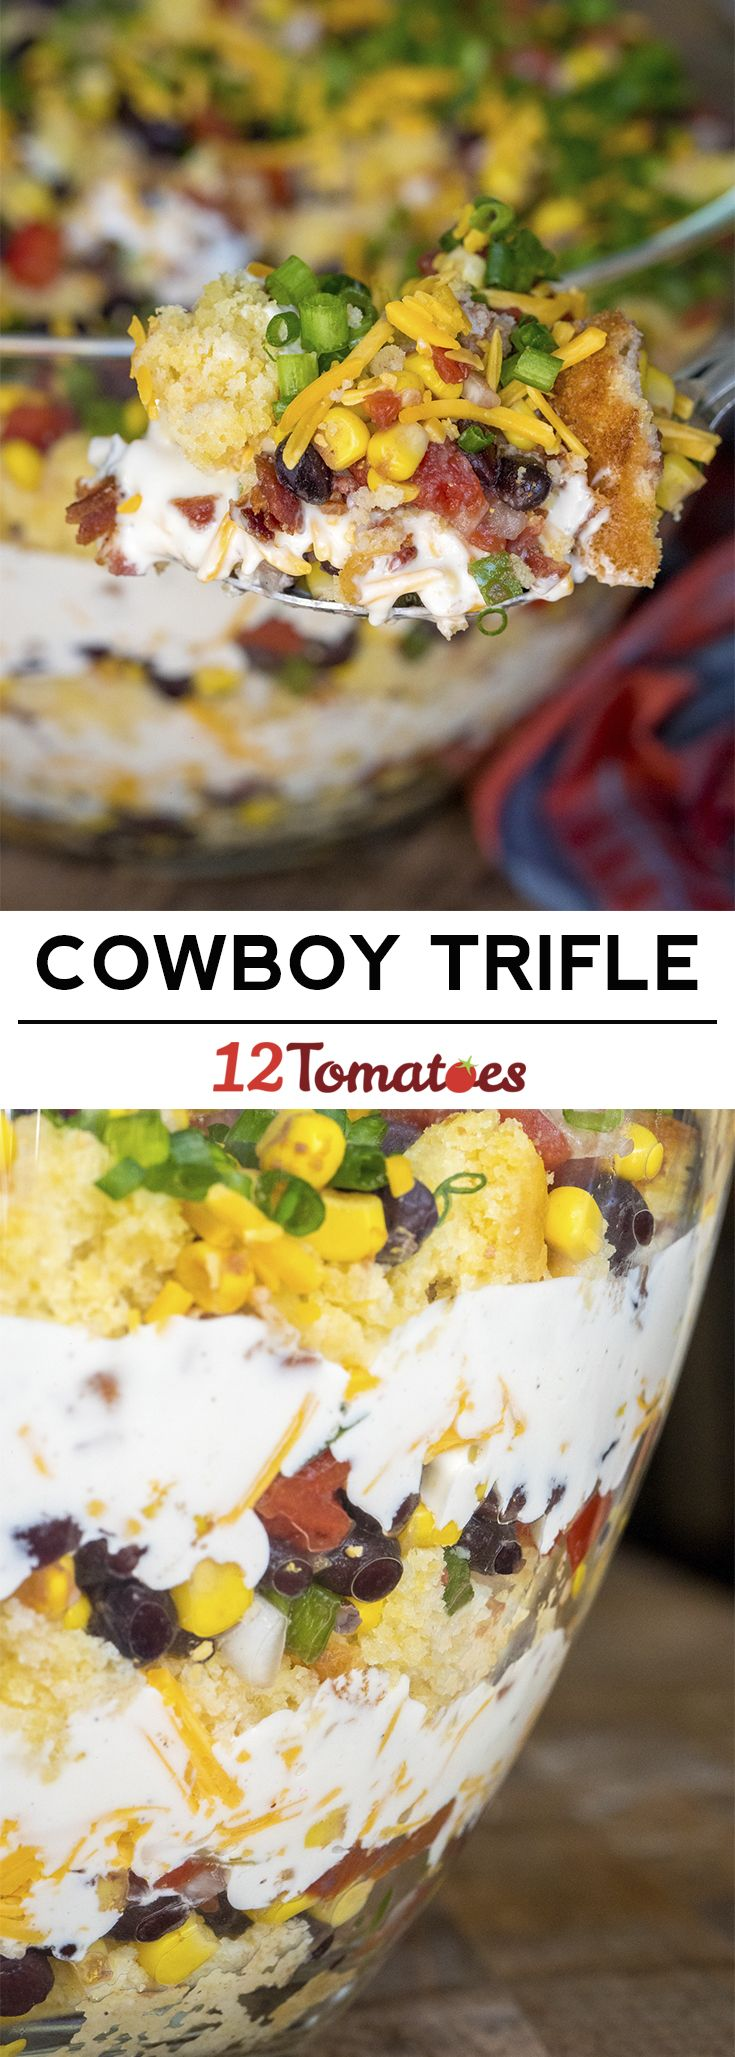 Cowboy Trifle side dish recipe ... Idea is similar to cornbread salad.